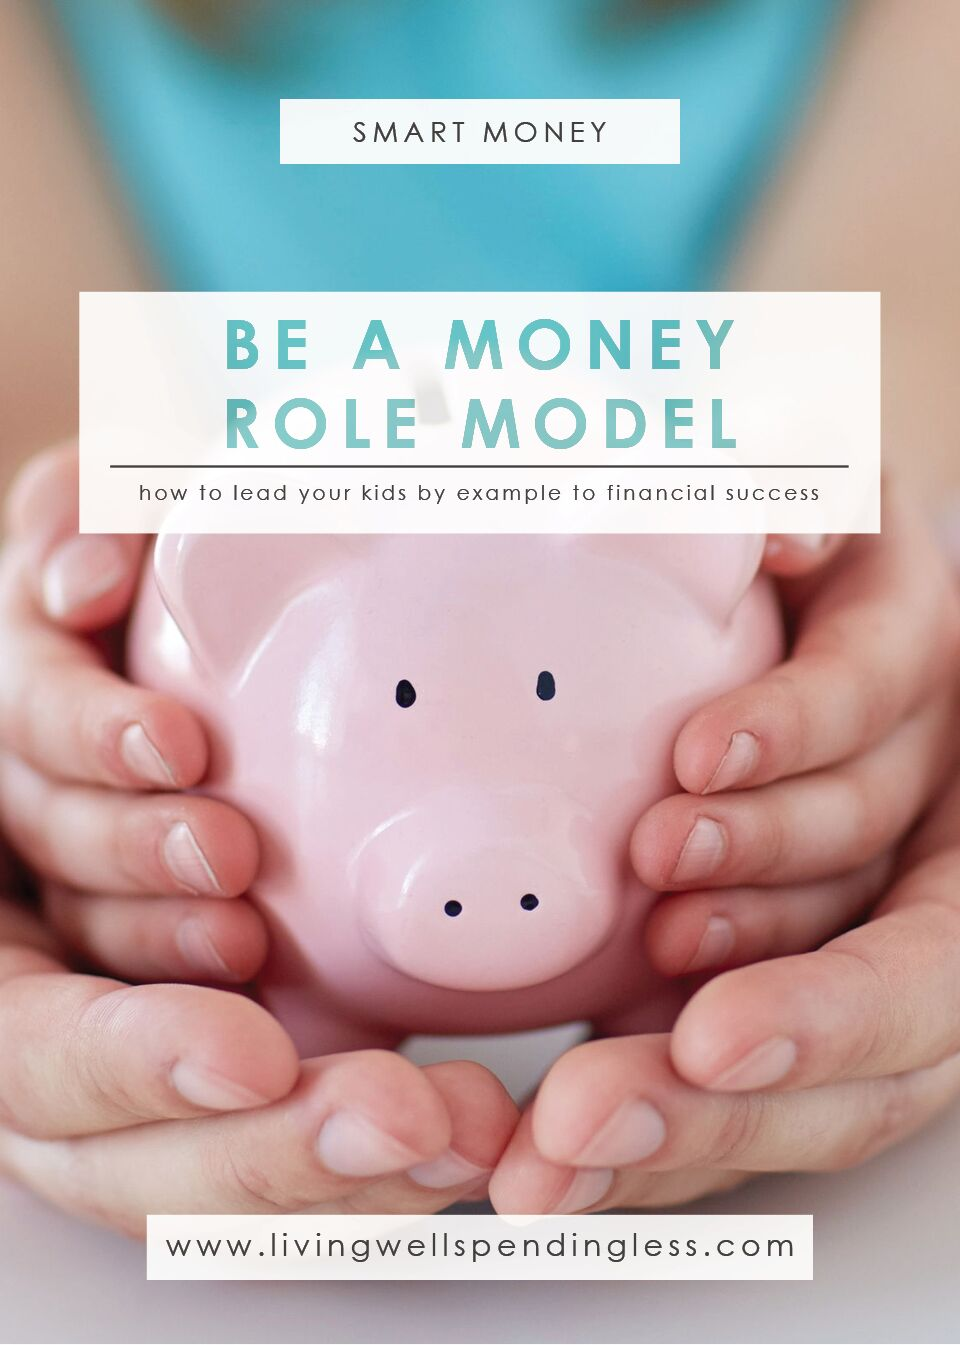 Be a money role model!